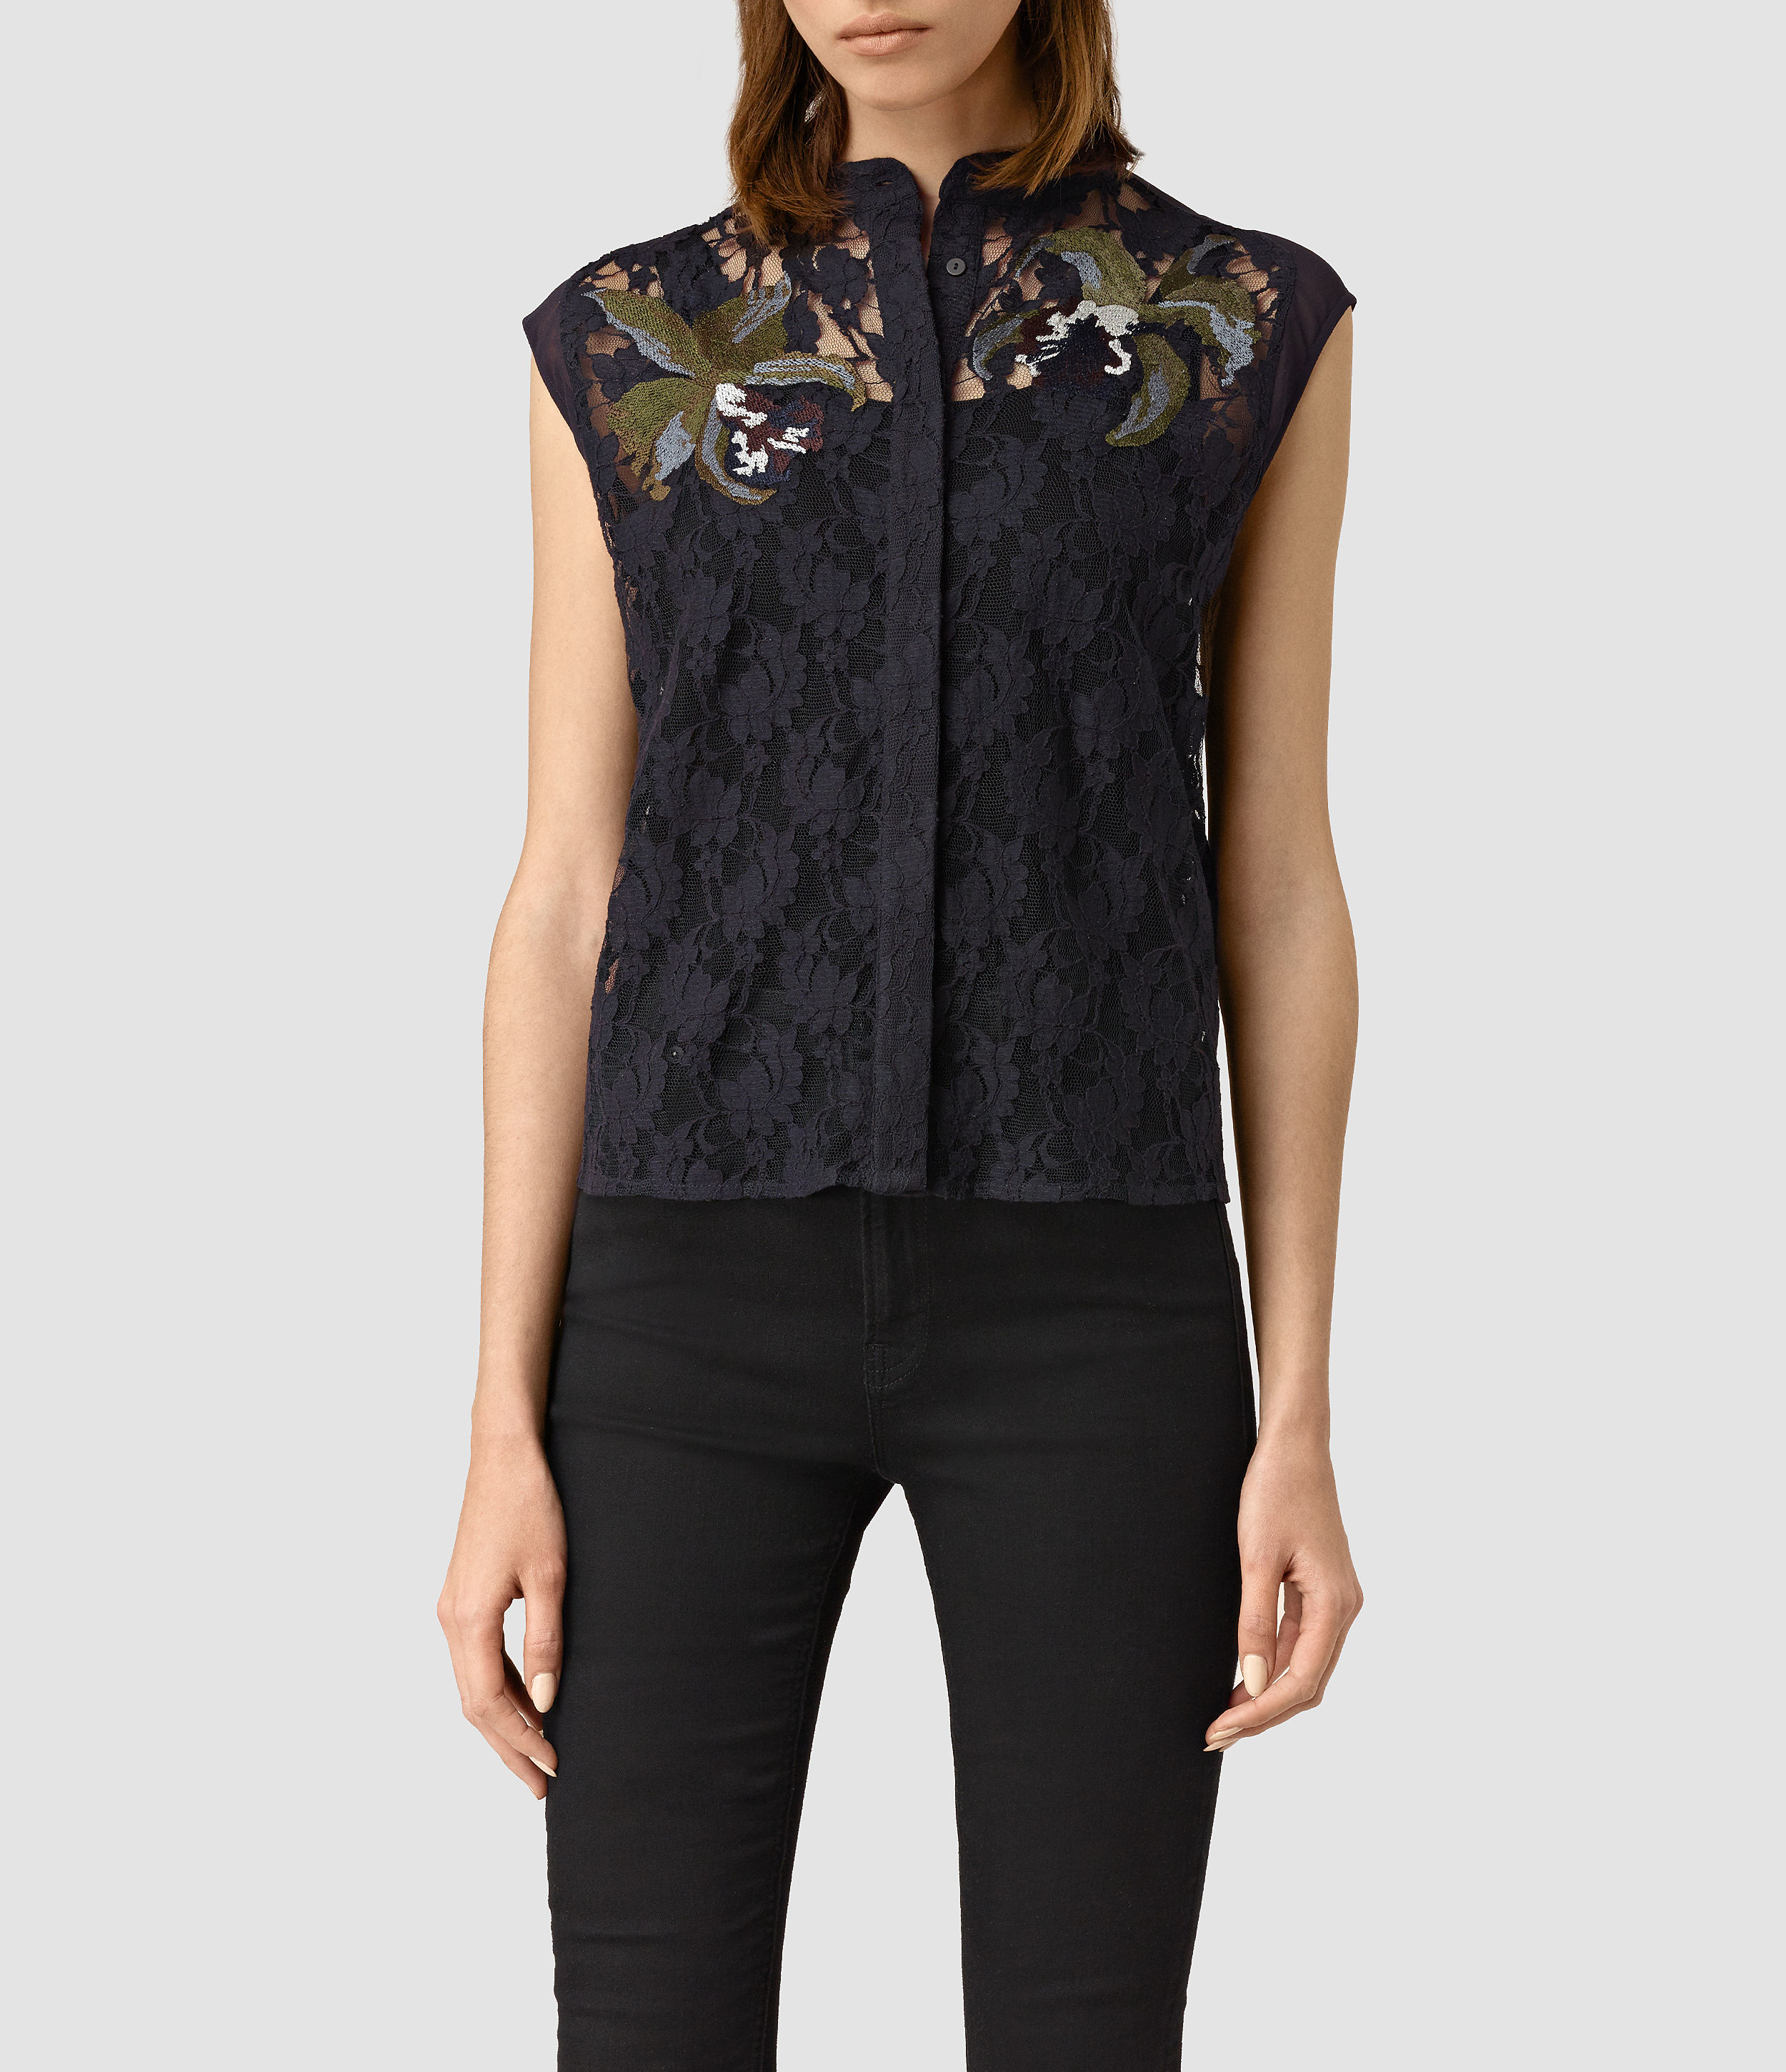 Allsaints Anya Embroidered Shirt In Black  Lyst